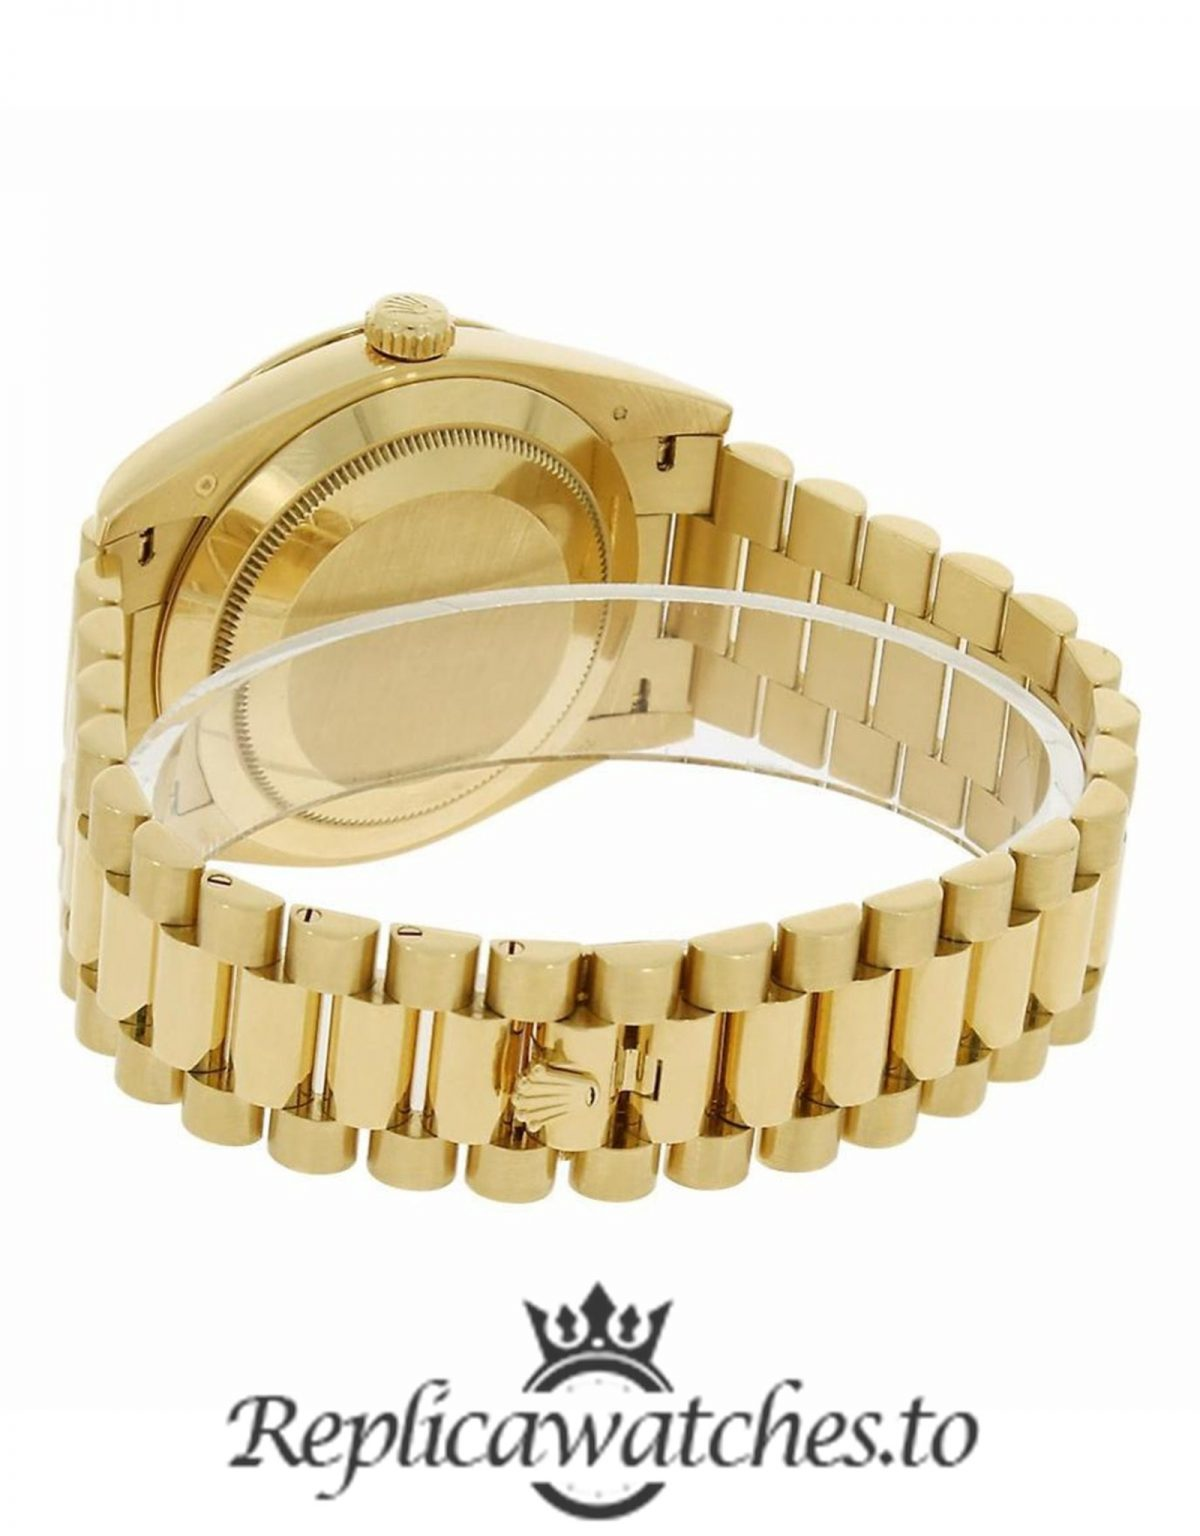 Rolex Day Date Replica 228348RBR Yellow Gold Strap 40MM